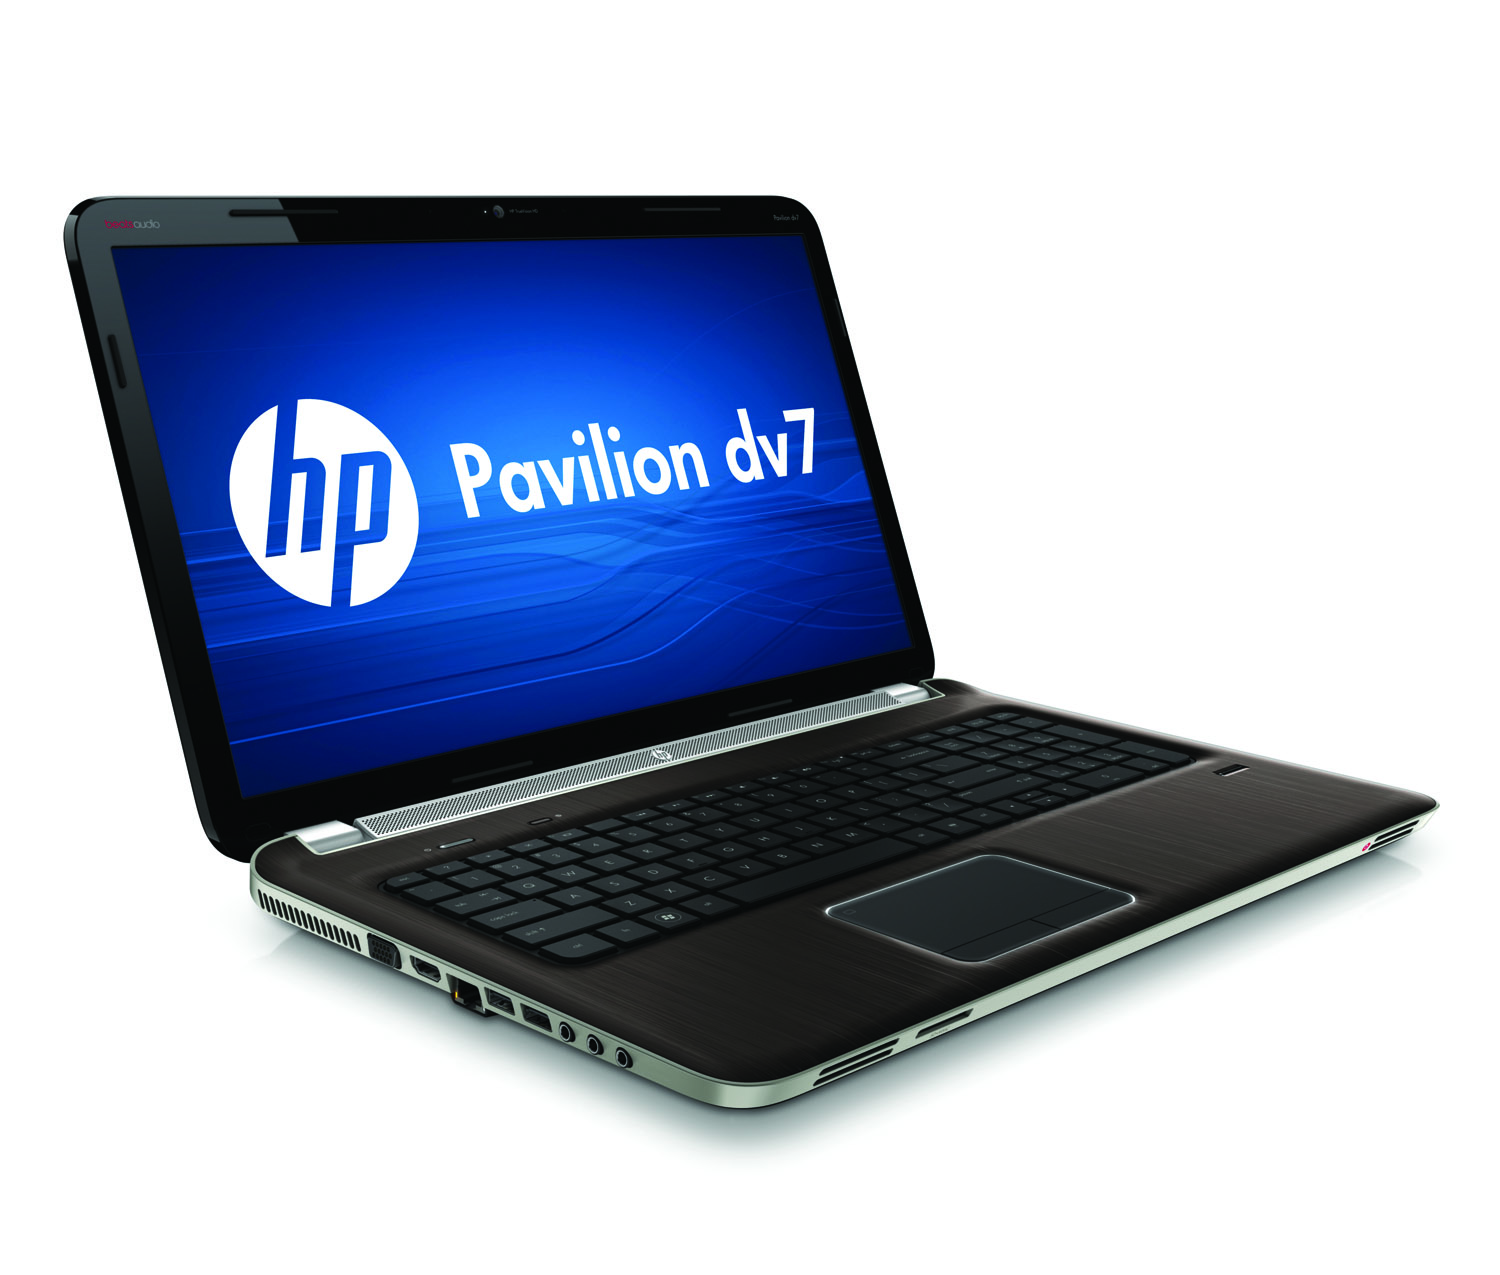 HP Pavilion Dv7 Earns Premium Label With Beats Audio And